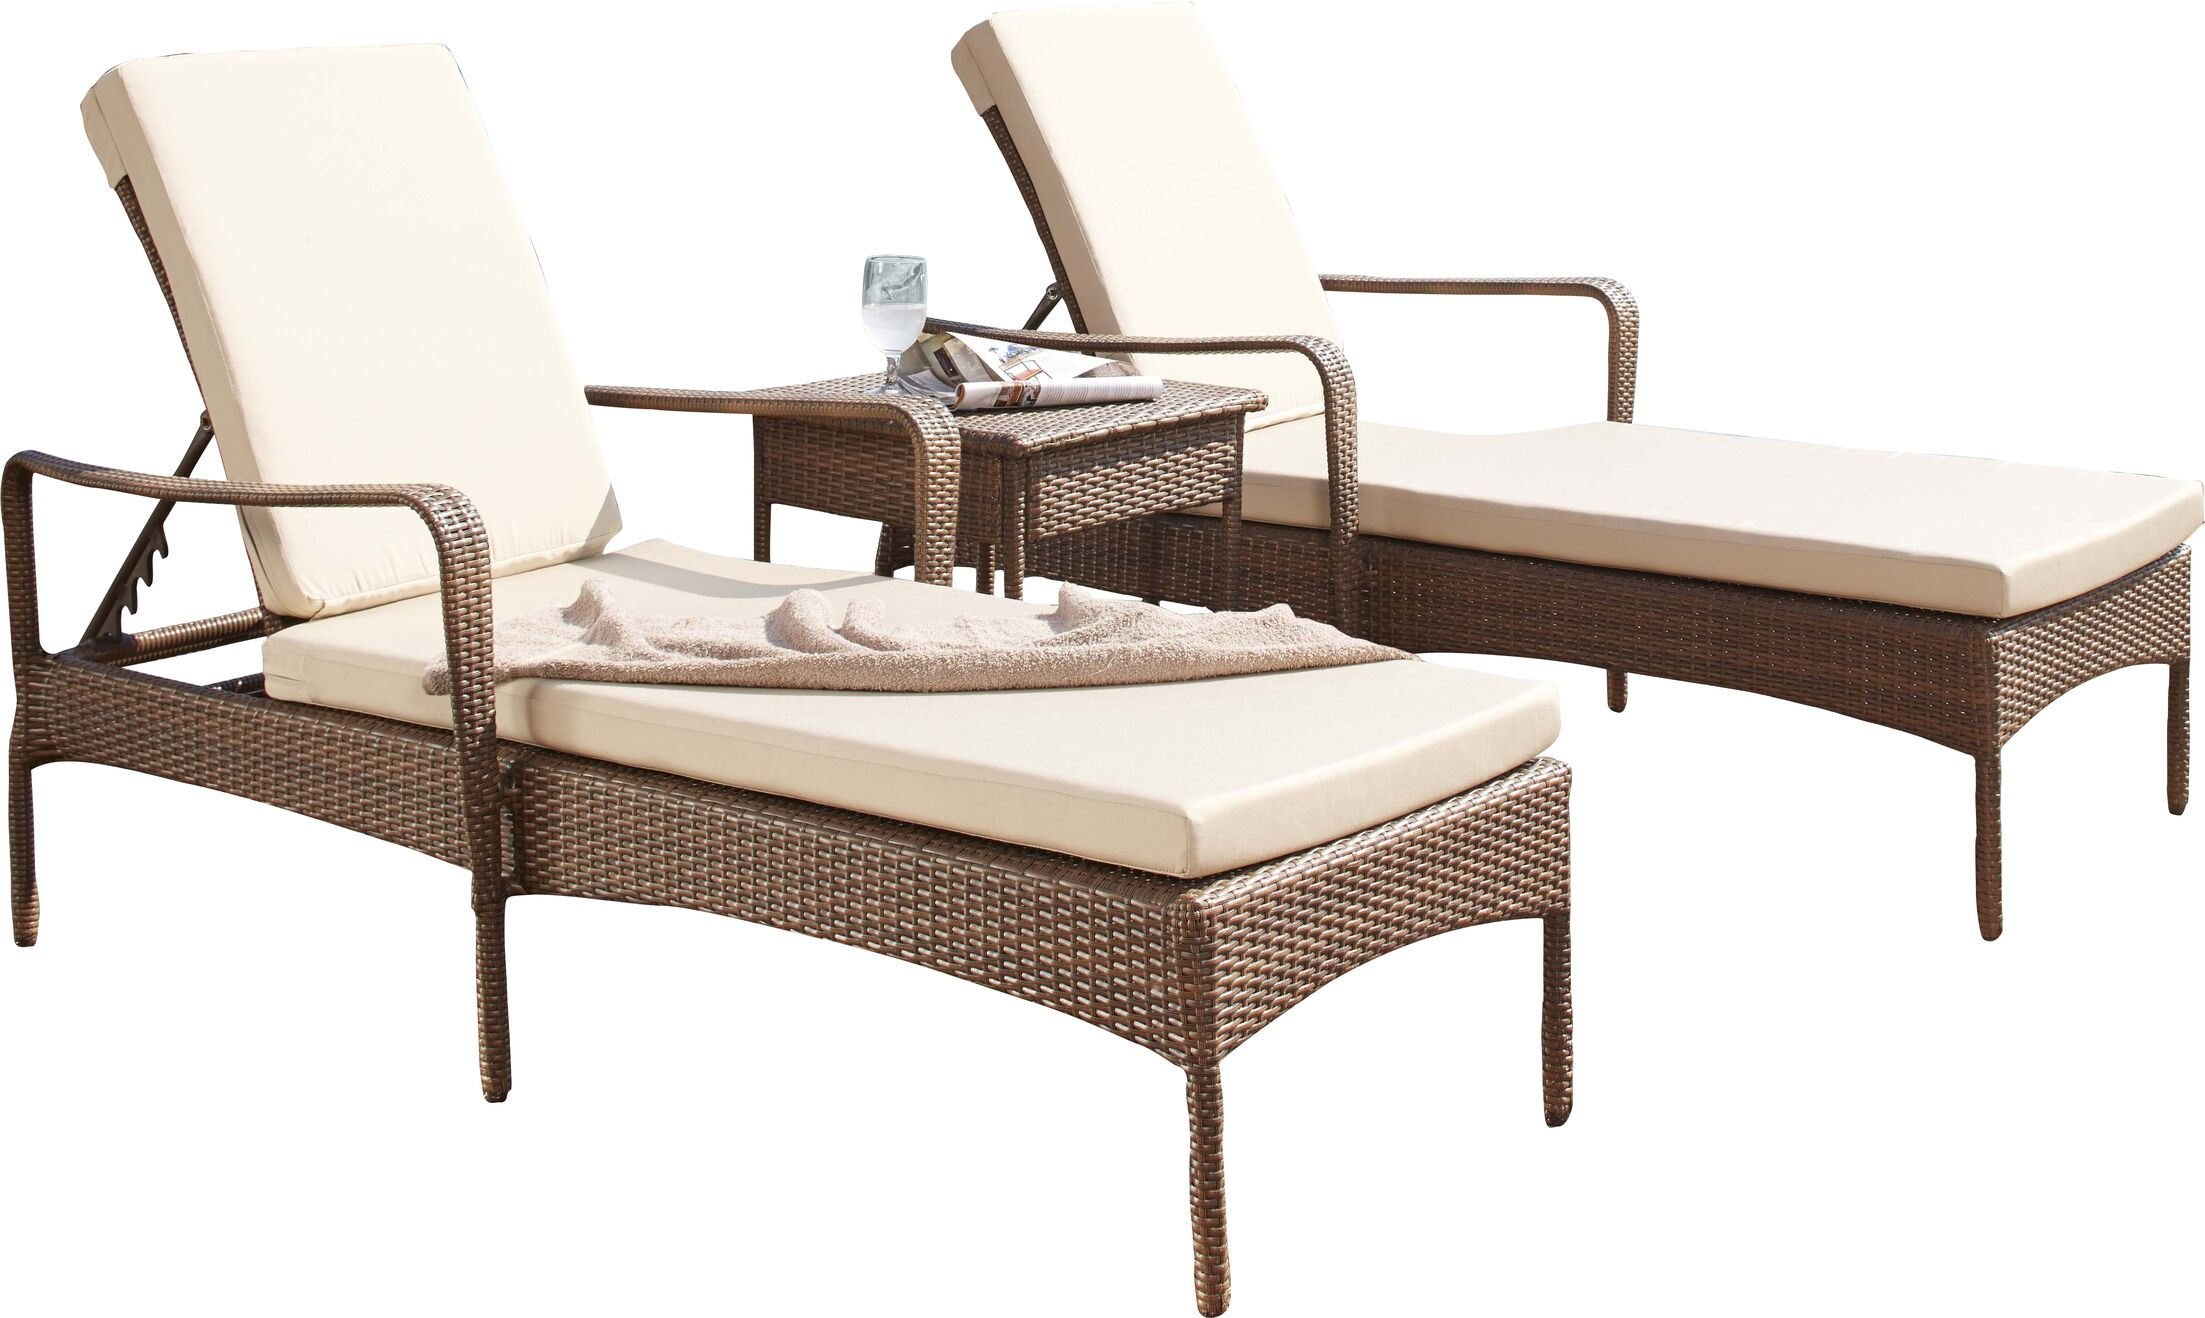 Key Biscayne Sun Lounger Set with Cushions and Table Color: Canvas Camel